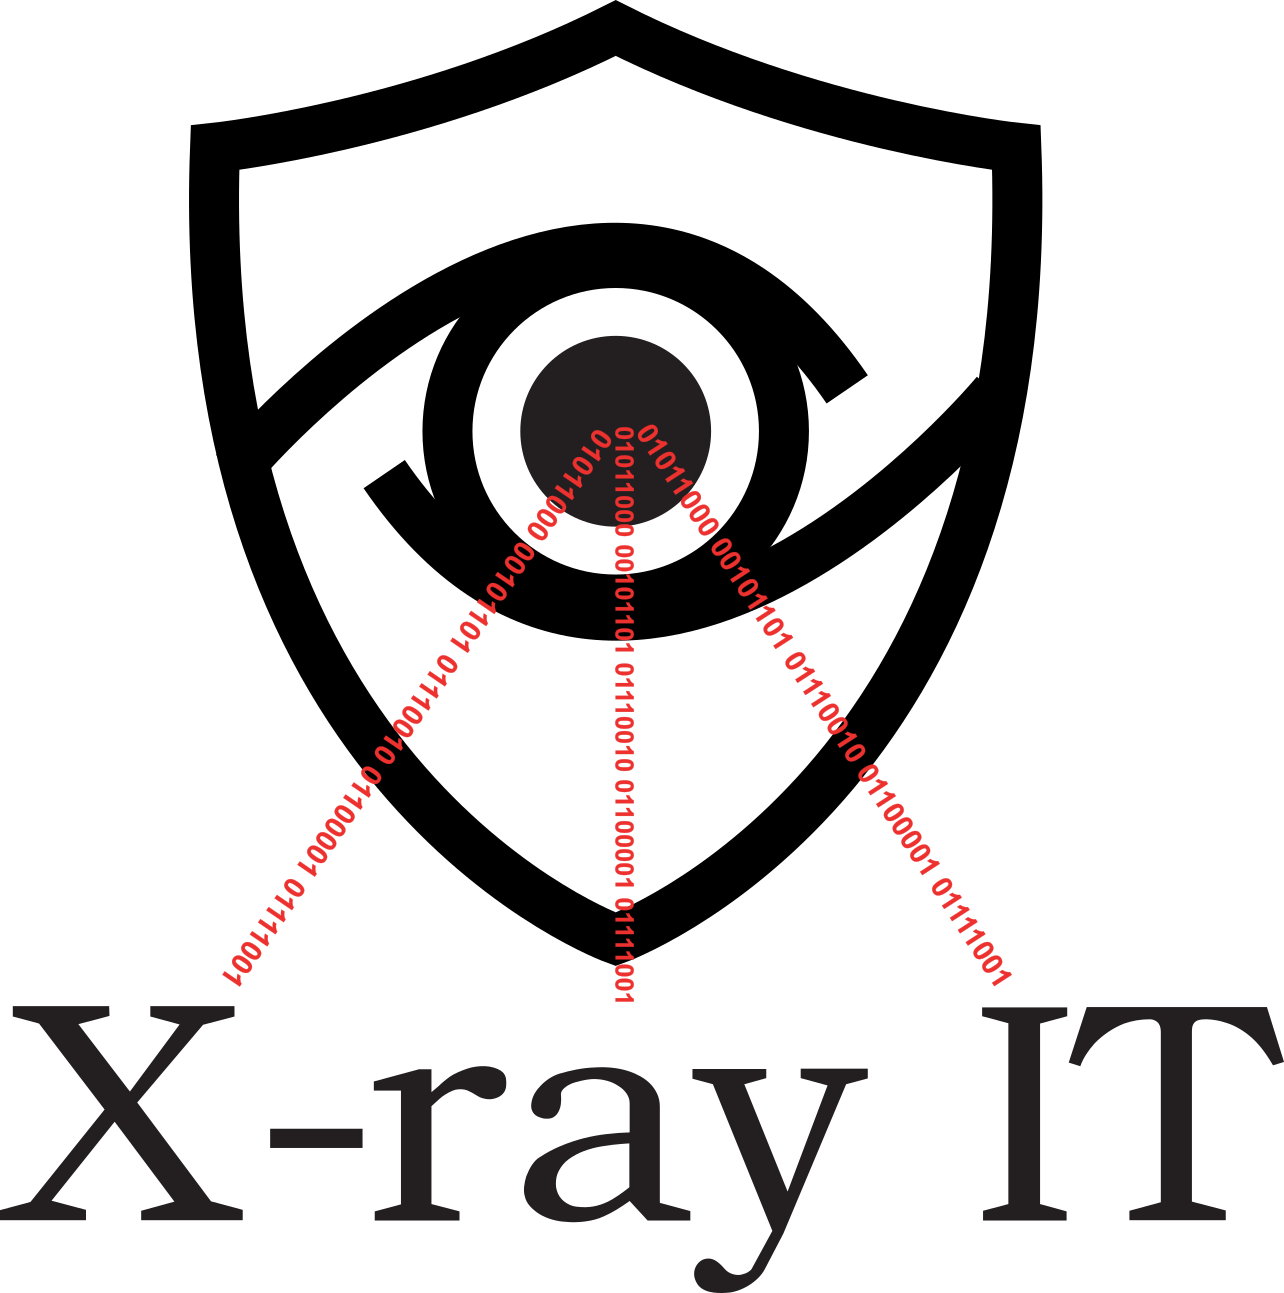 My Company X Ray It Specialized In Cyber Security Cyber Security Cyber X Ray